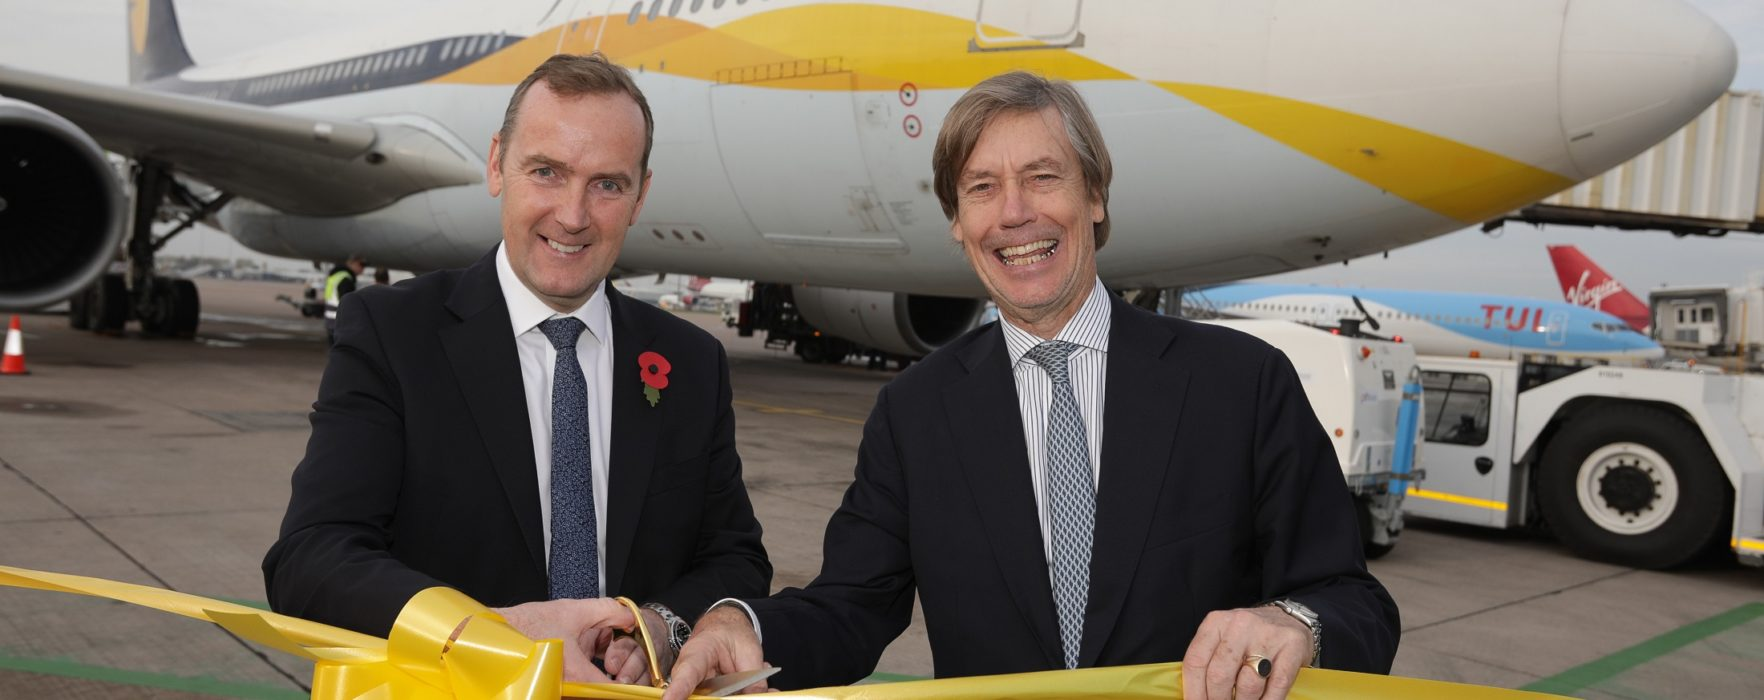 Manchester to Mumbai route will unlock £400m of economic benefits for the region